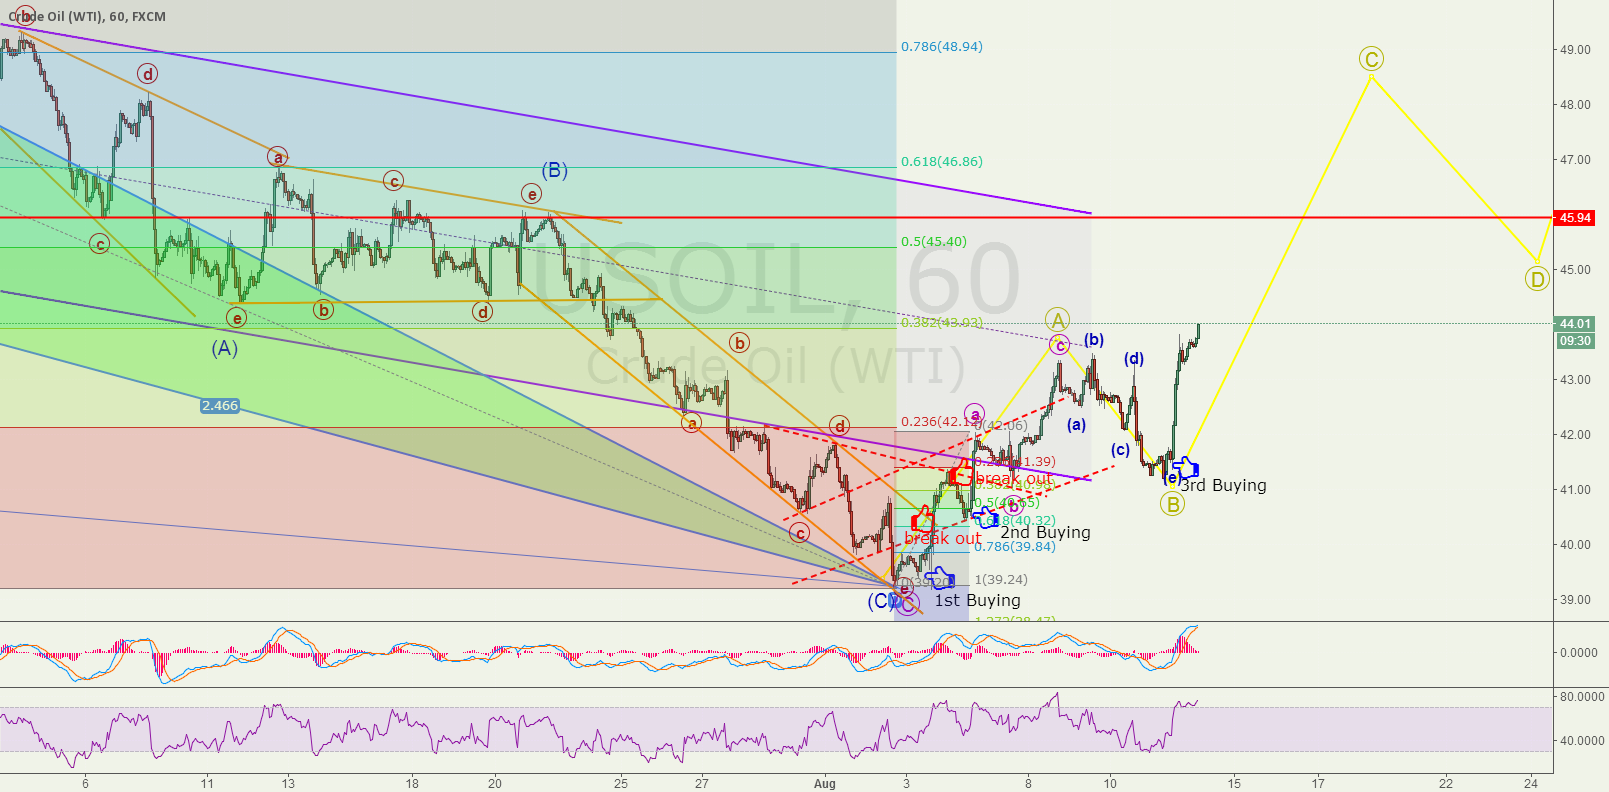 Update for Oil